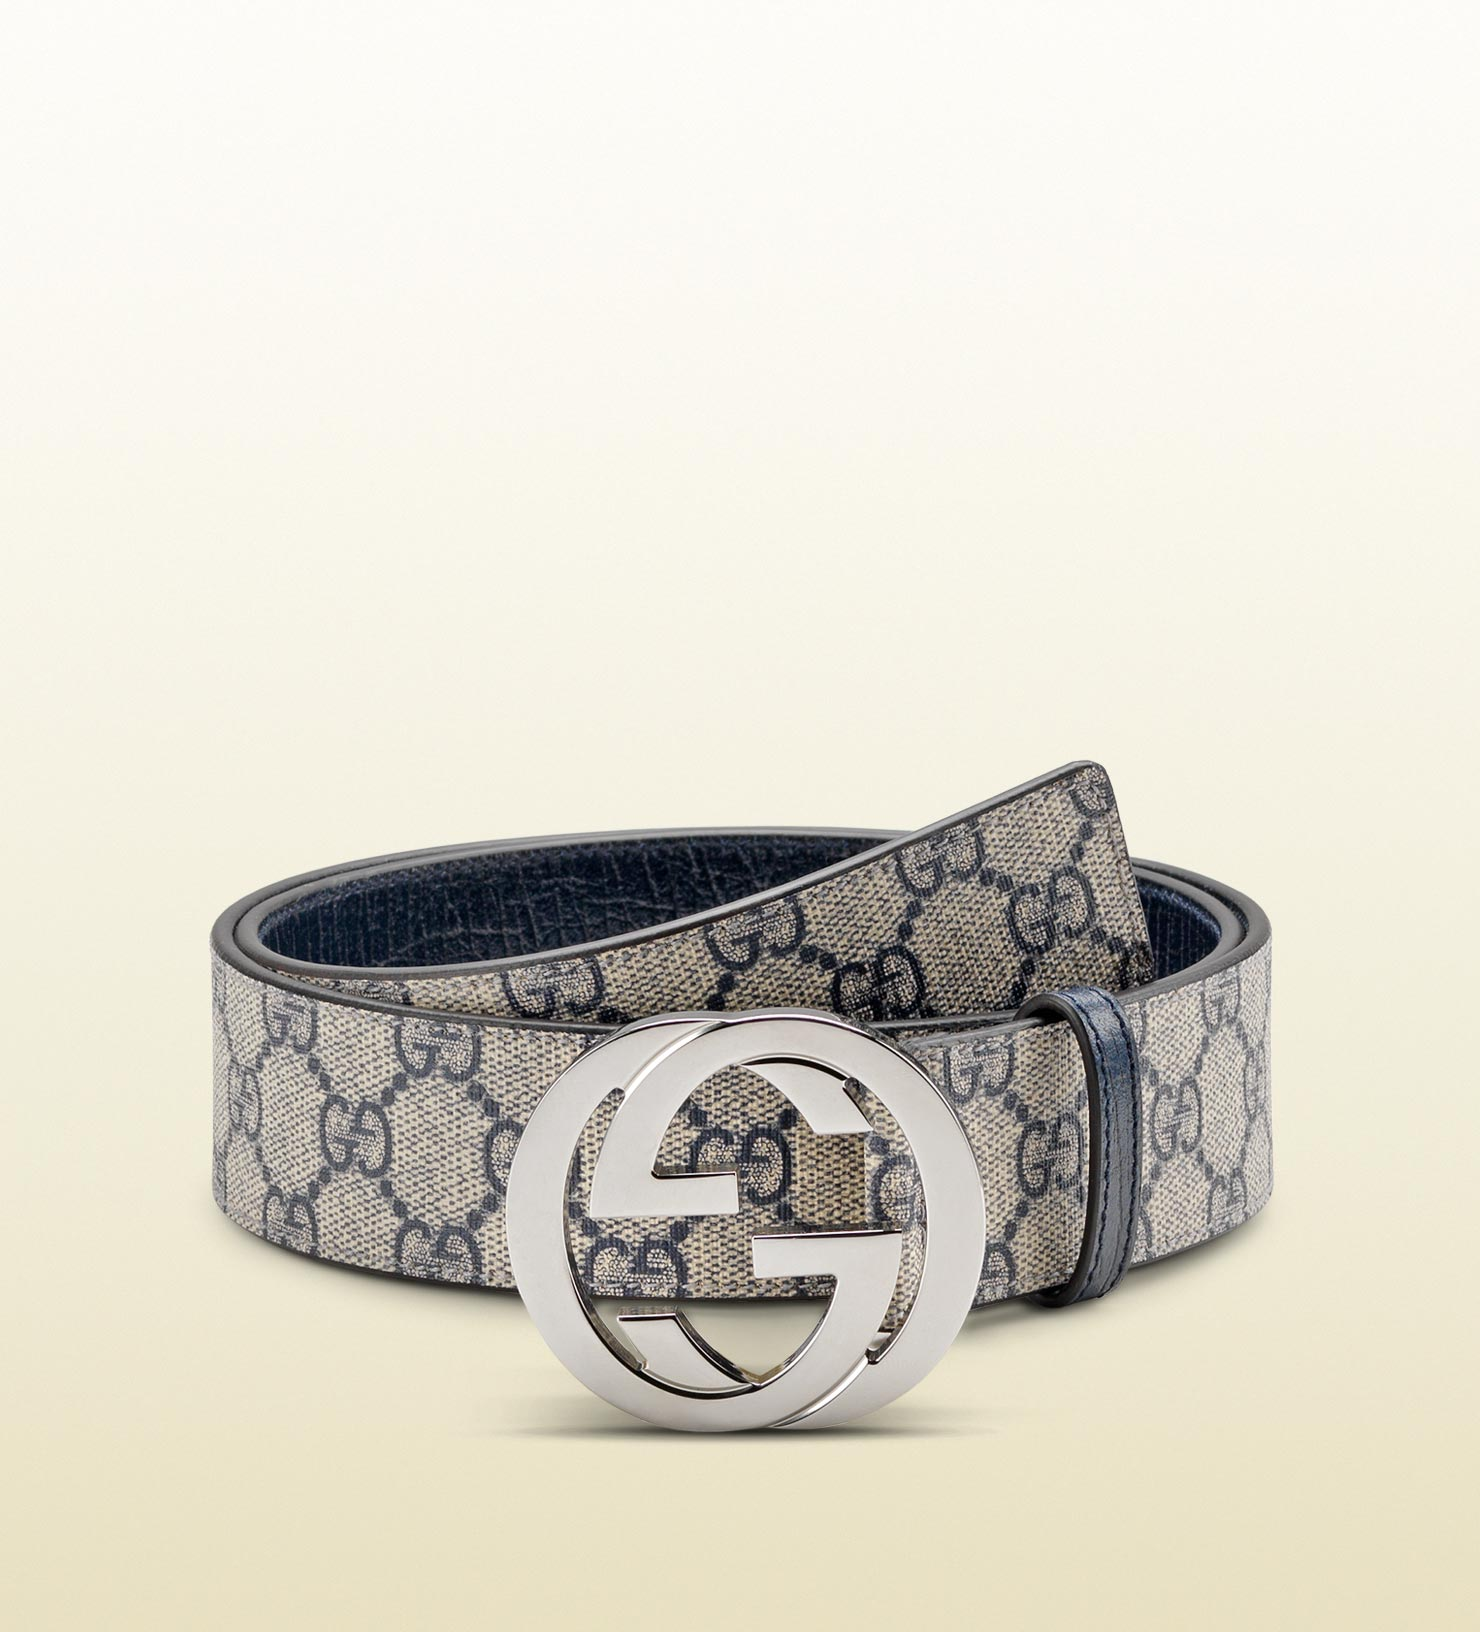 Lyst Gucci Belt With Interlocking G Buckle In Blue For Men